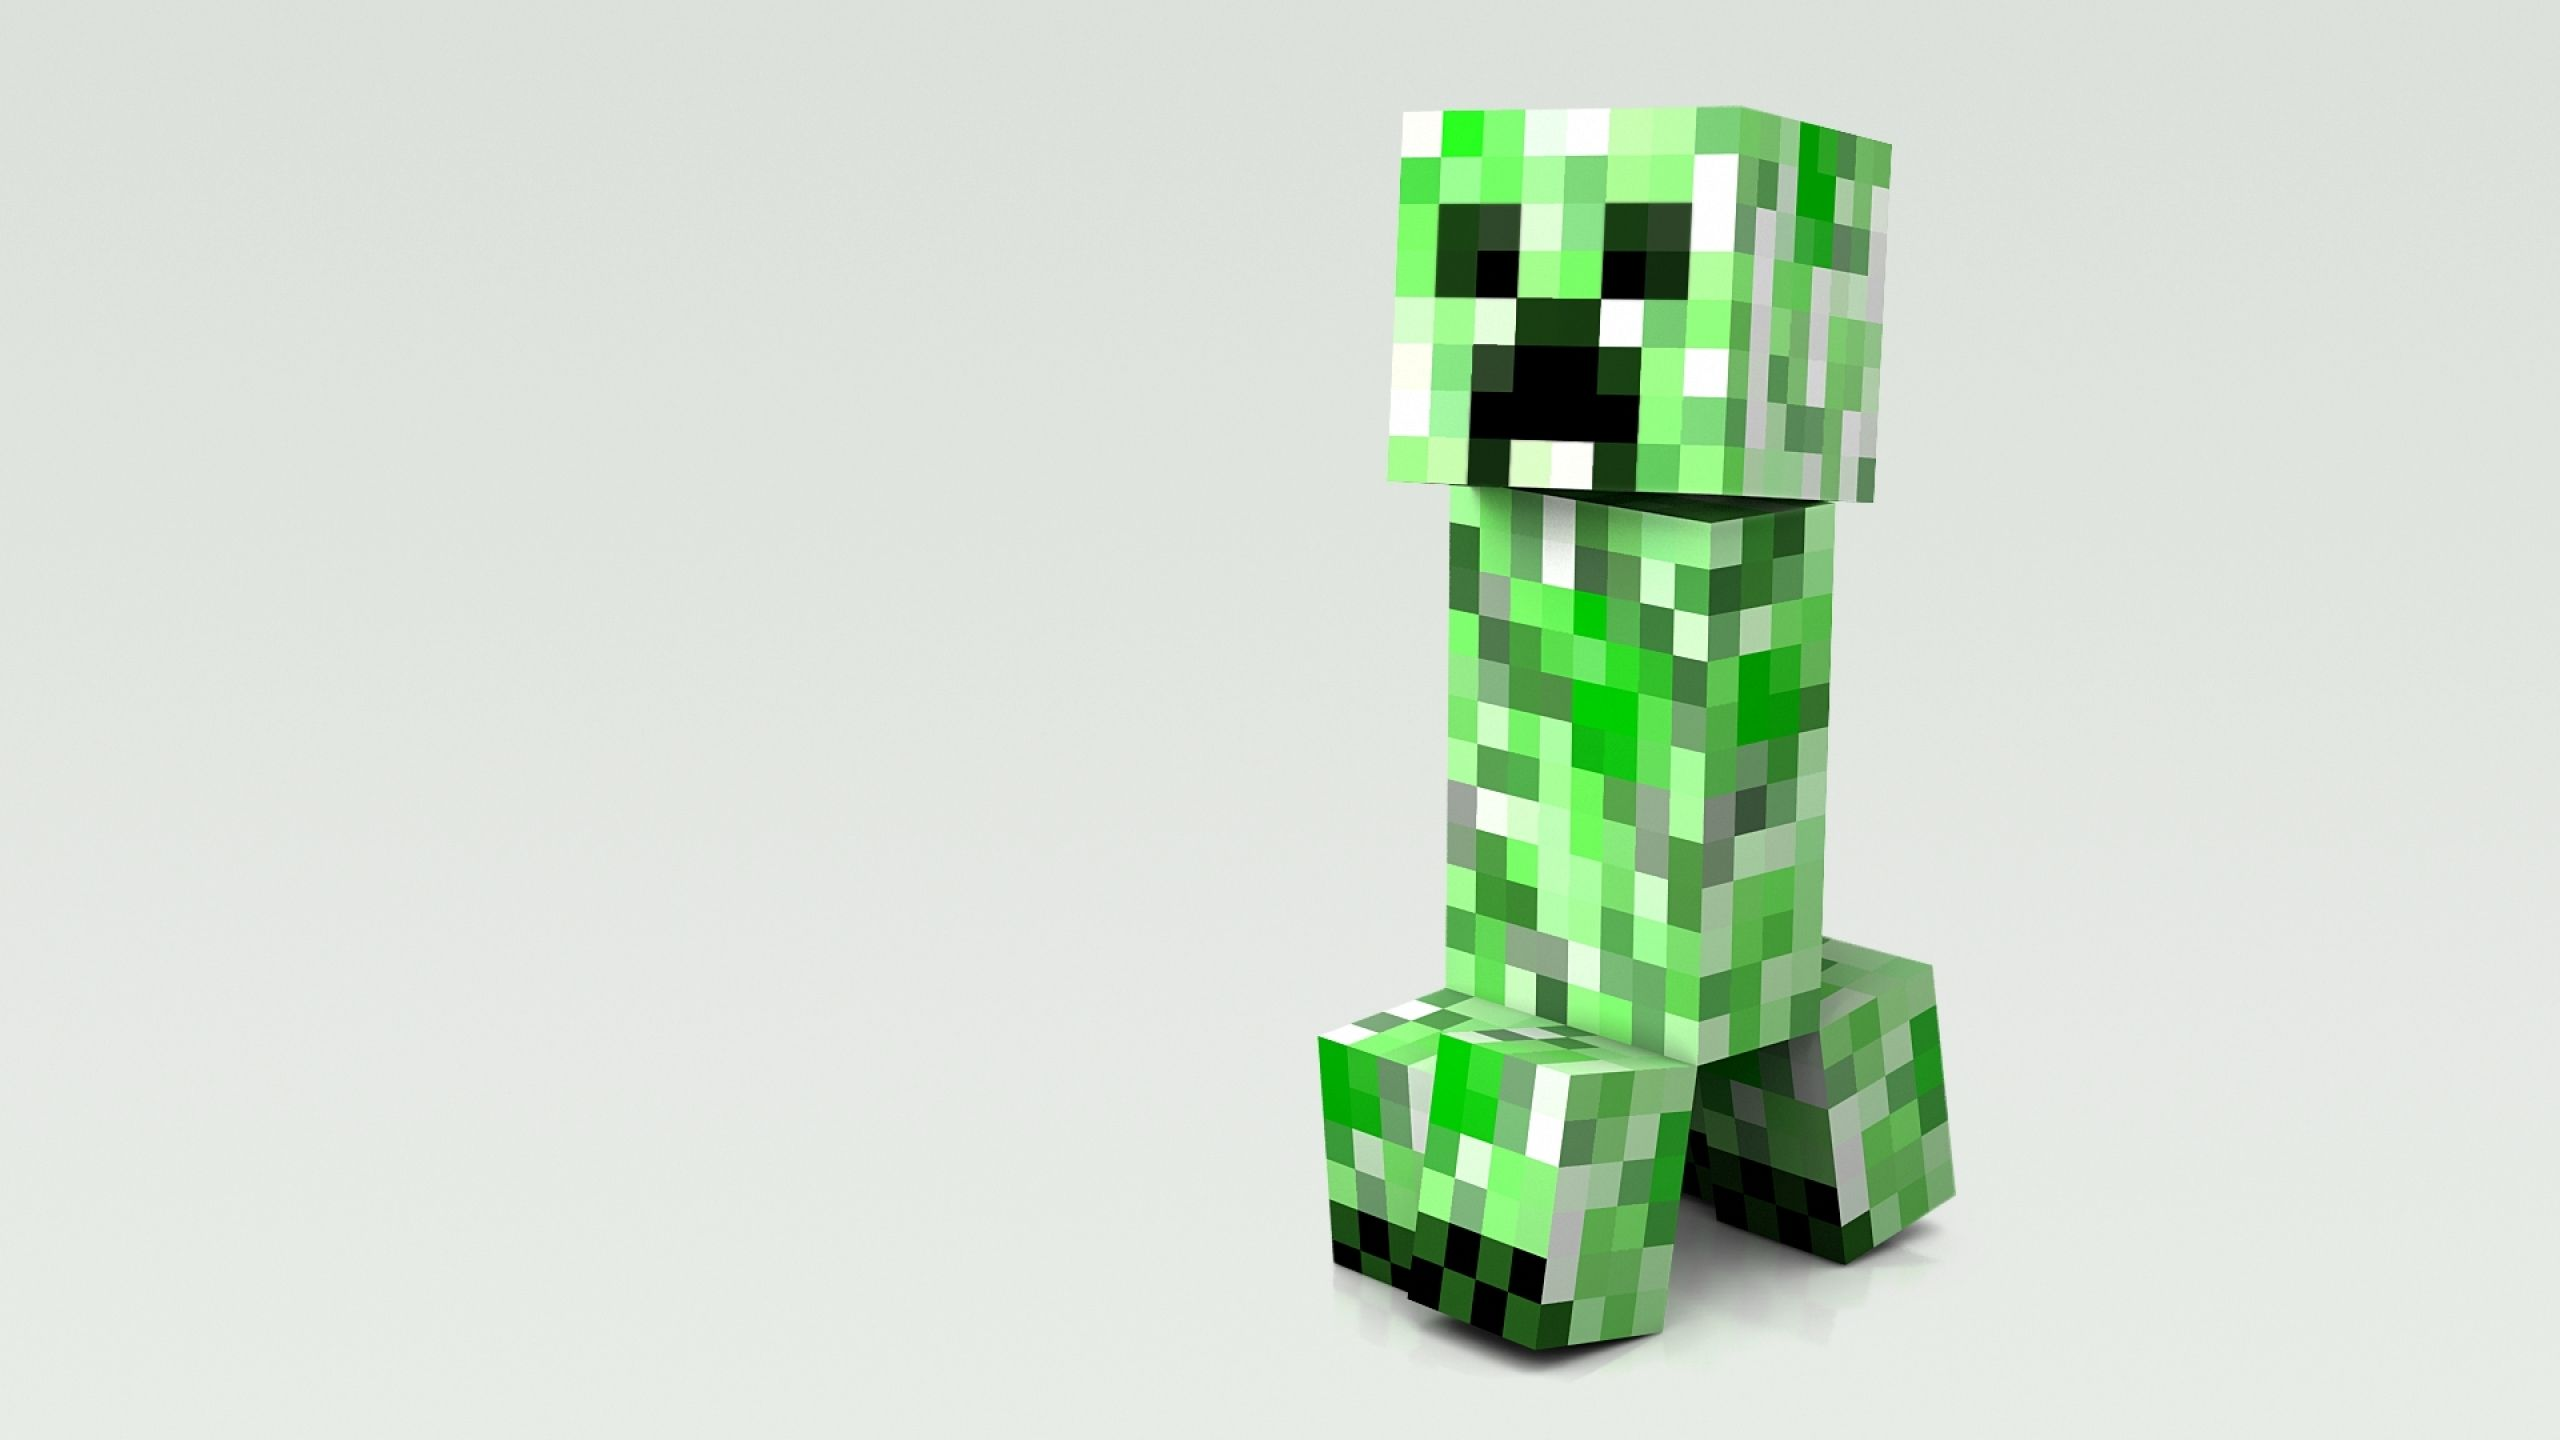 Minecraft Creeper Wallpapers For Android ~ Sdeerwallpaper